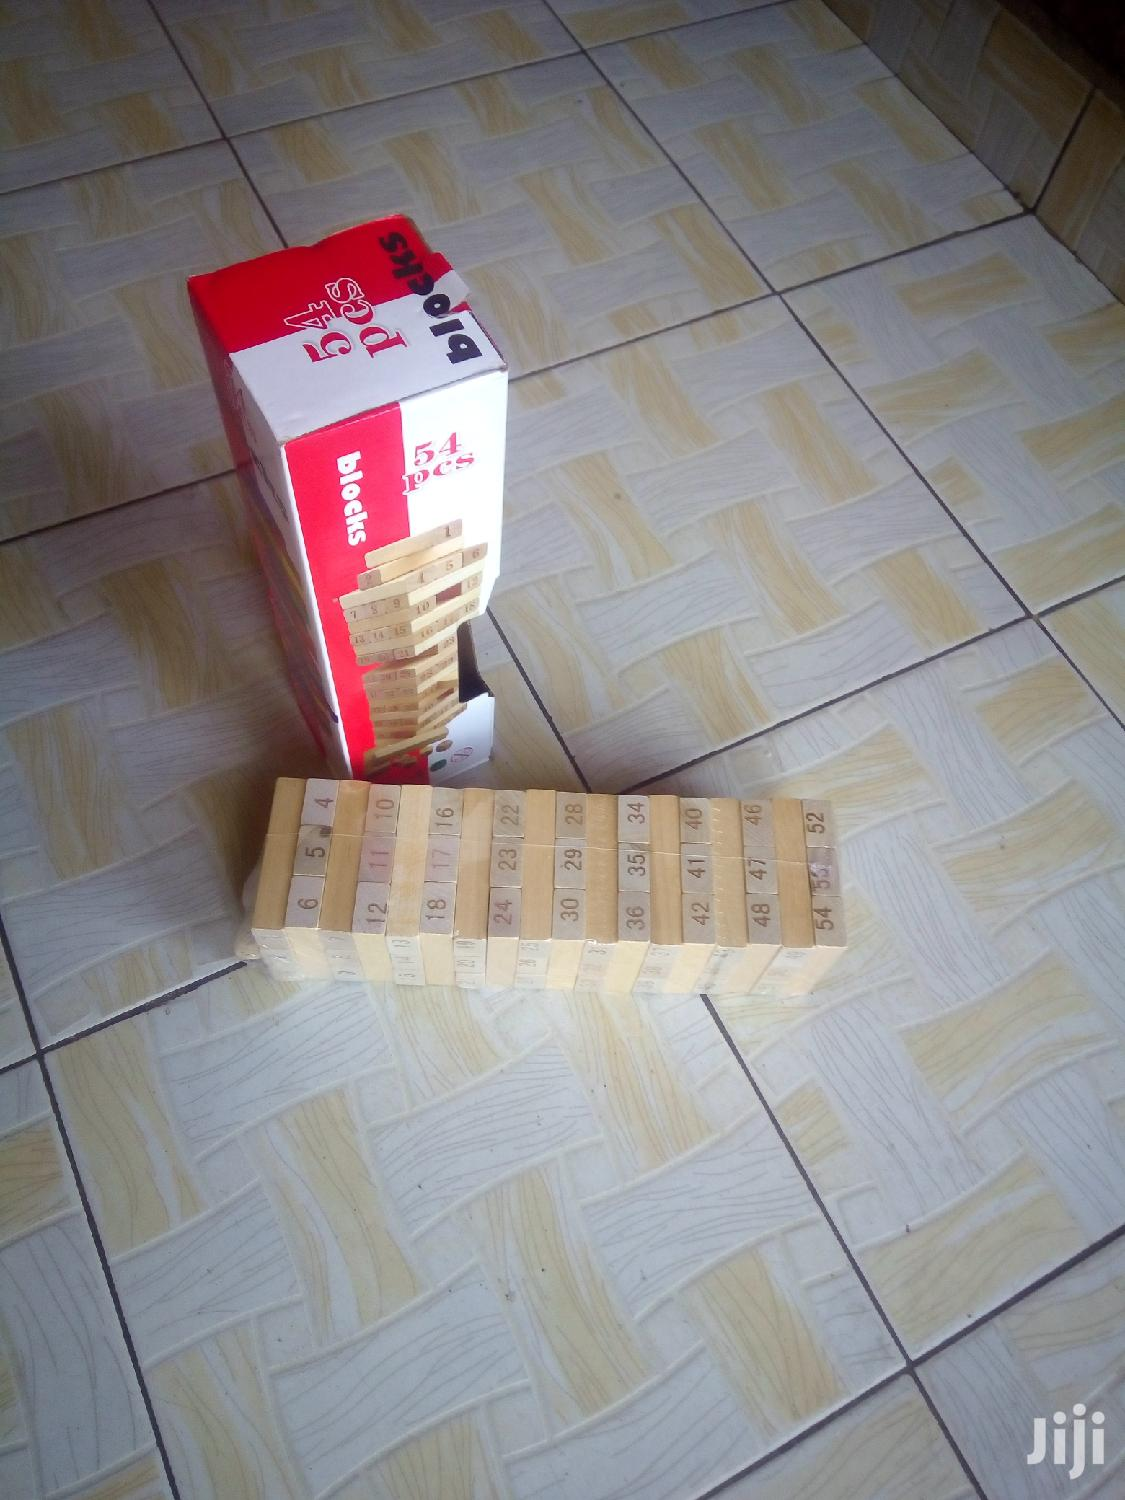 Jenga Block Tower Game -54 Blocks | Books & Games for sale in Nairobi Central, Nairobi, Kenya